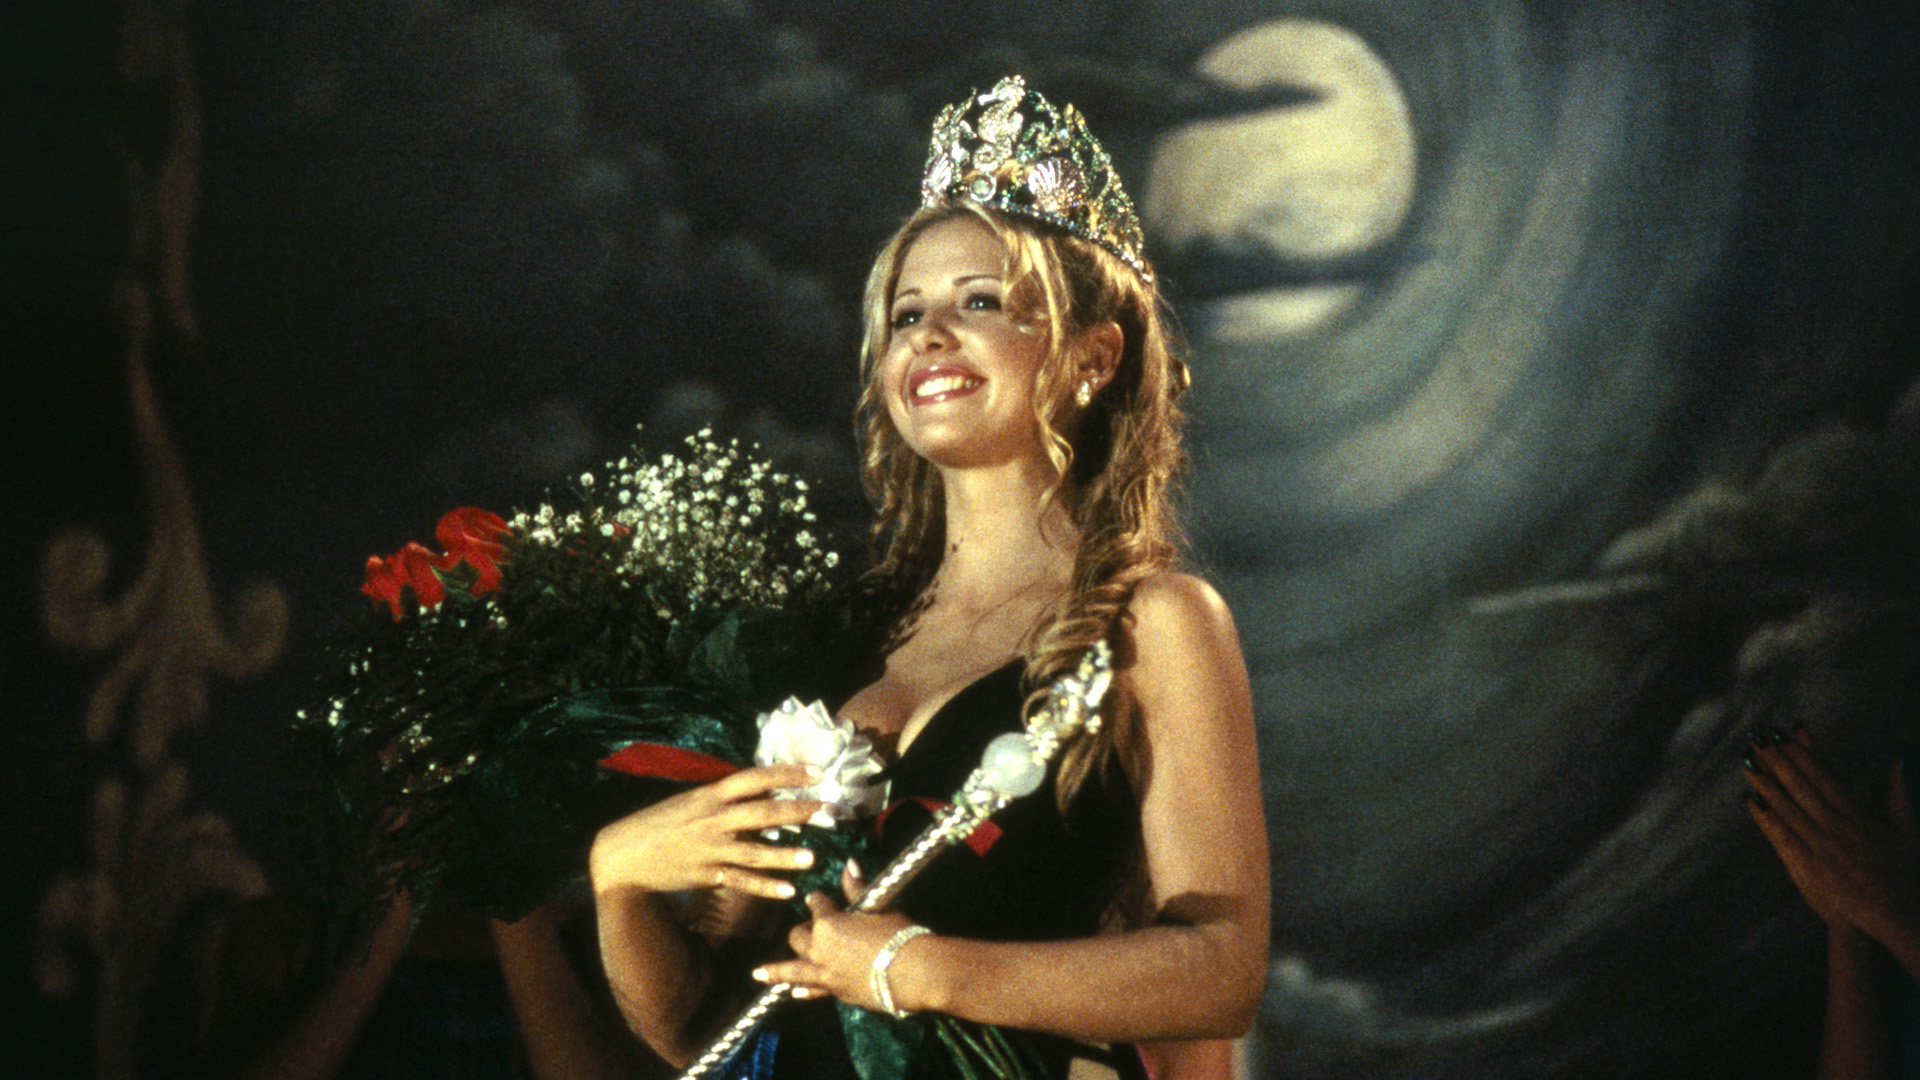 """Sarah Michelle Geller is crowne """"The Croaker Queen"""" in I Know What You Did Last Summer"""